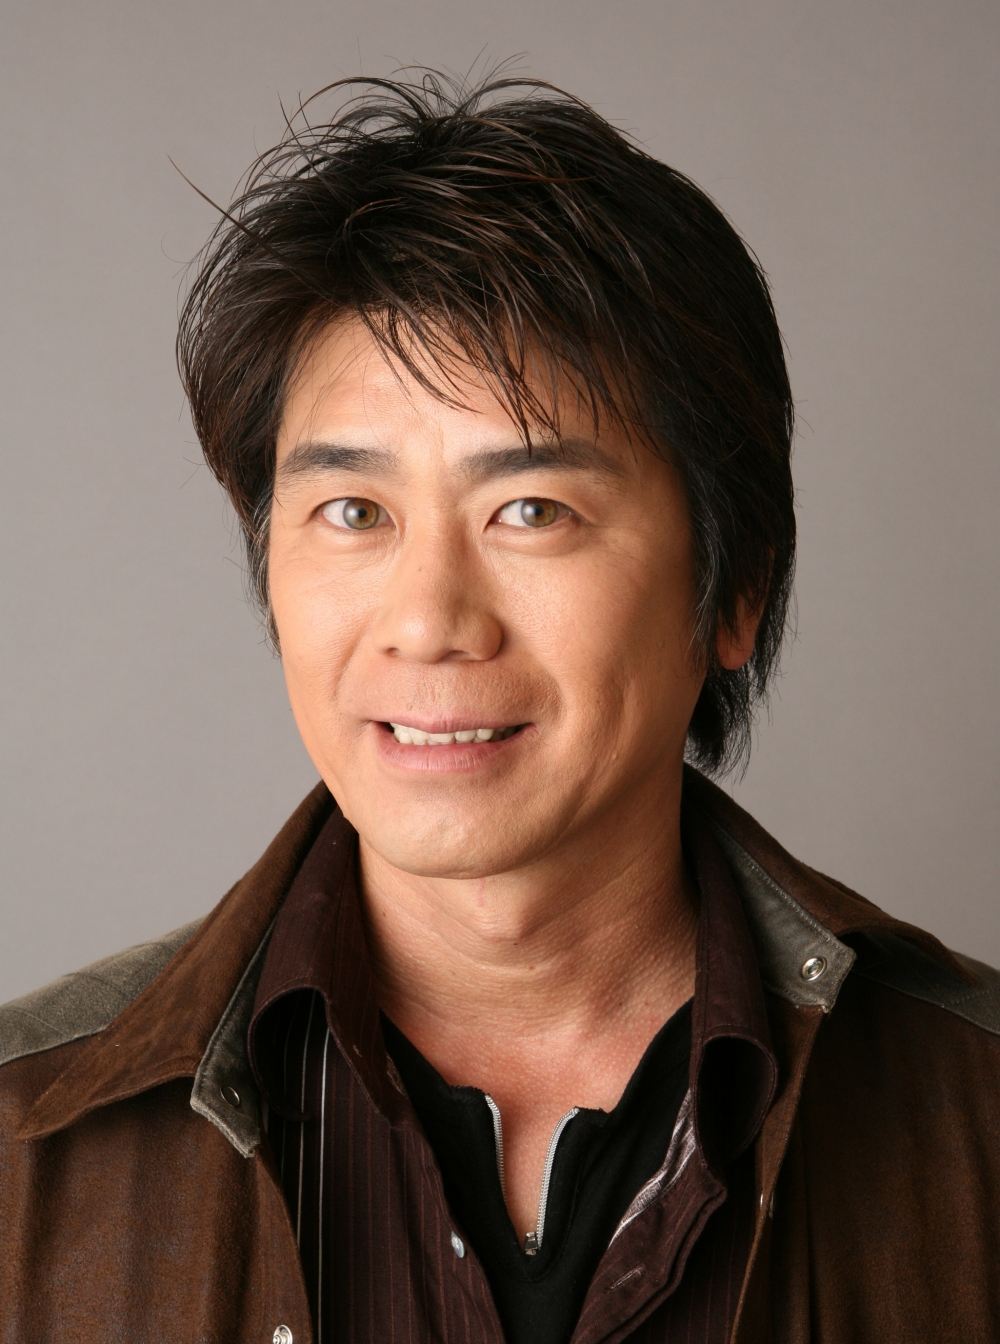 File:KentaroHayami.jpg